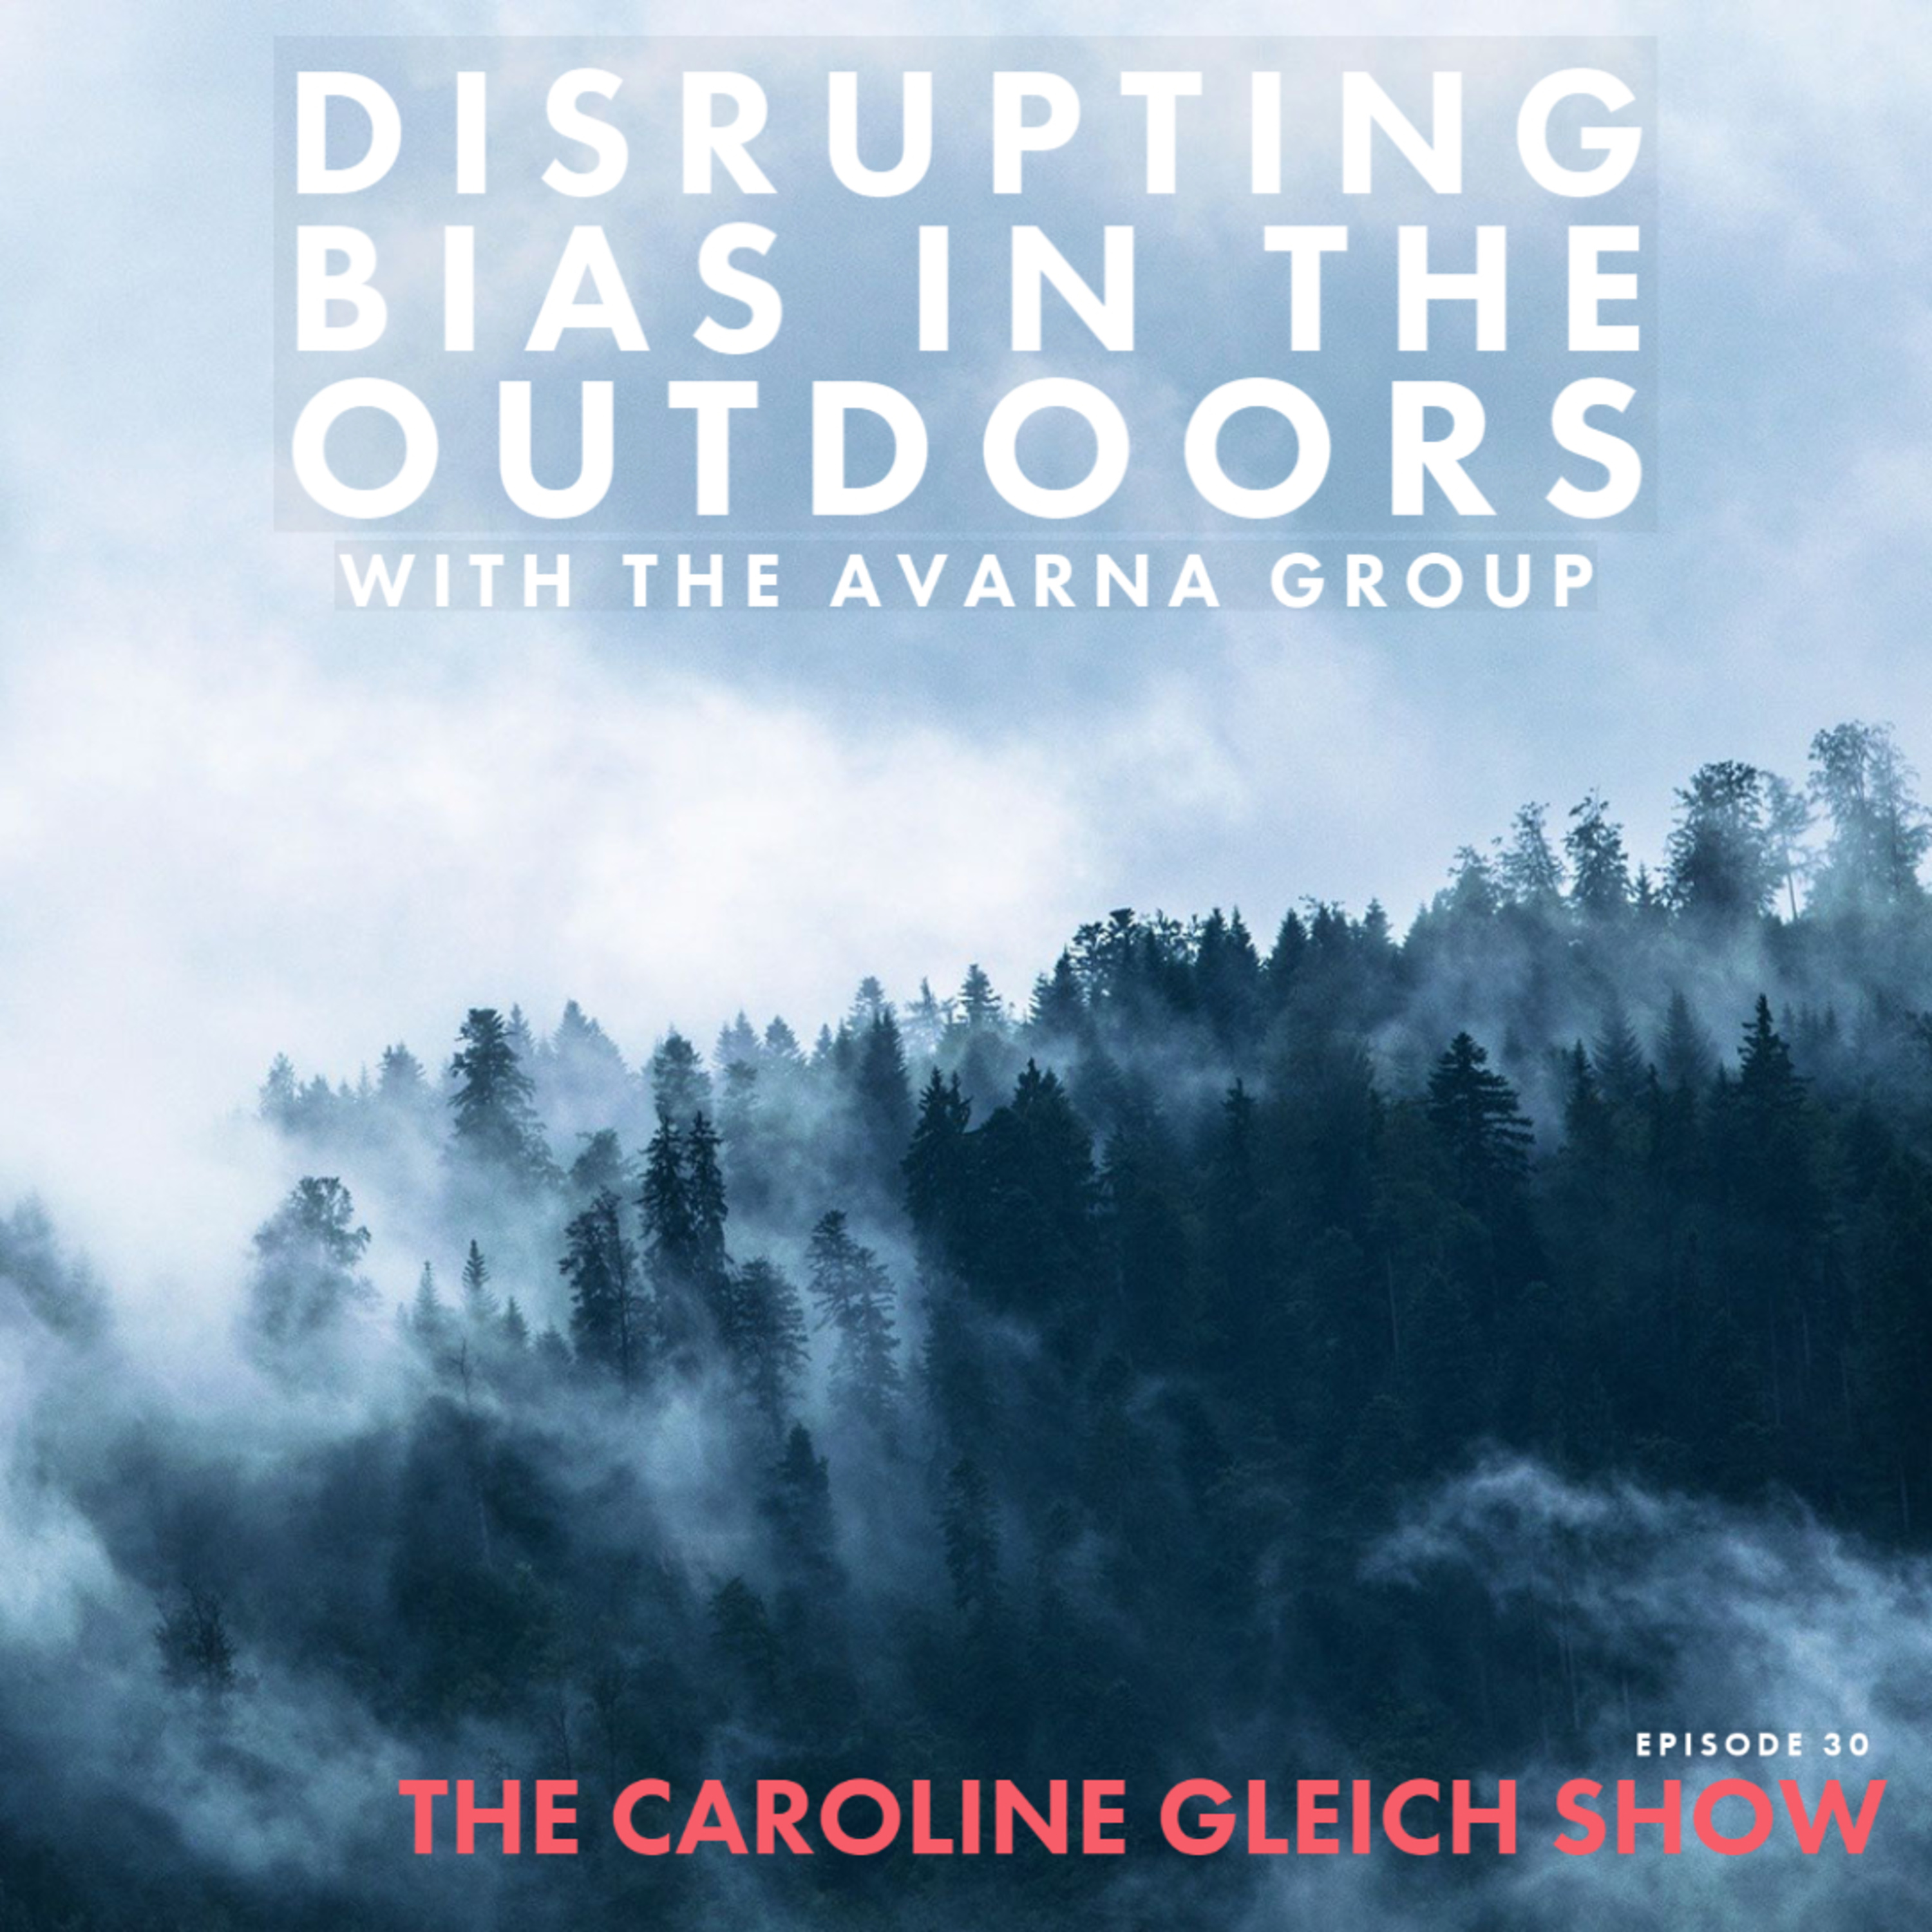 30: Disrupting Implicit Bias in the Outdoors with the Avarna Group